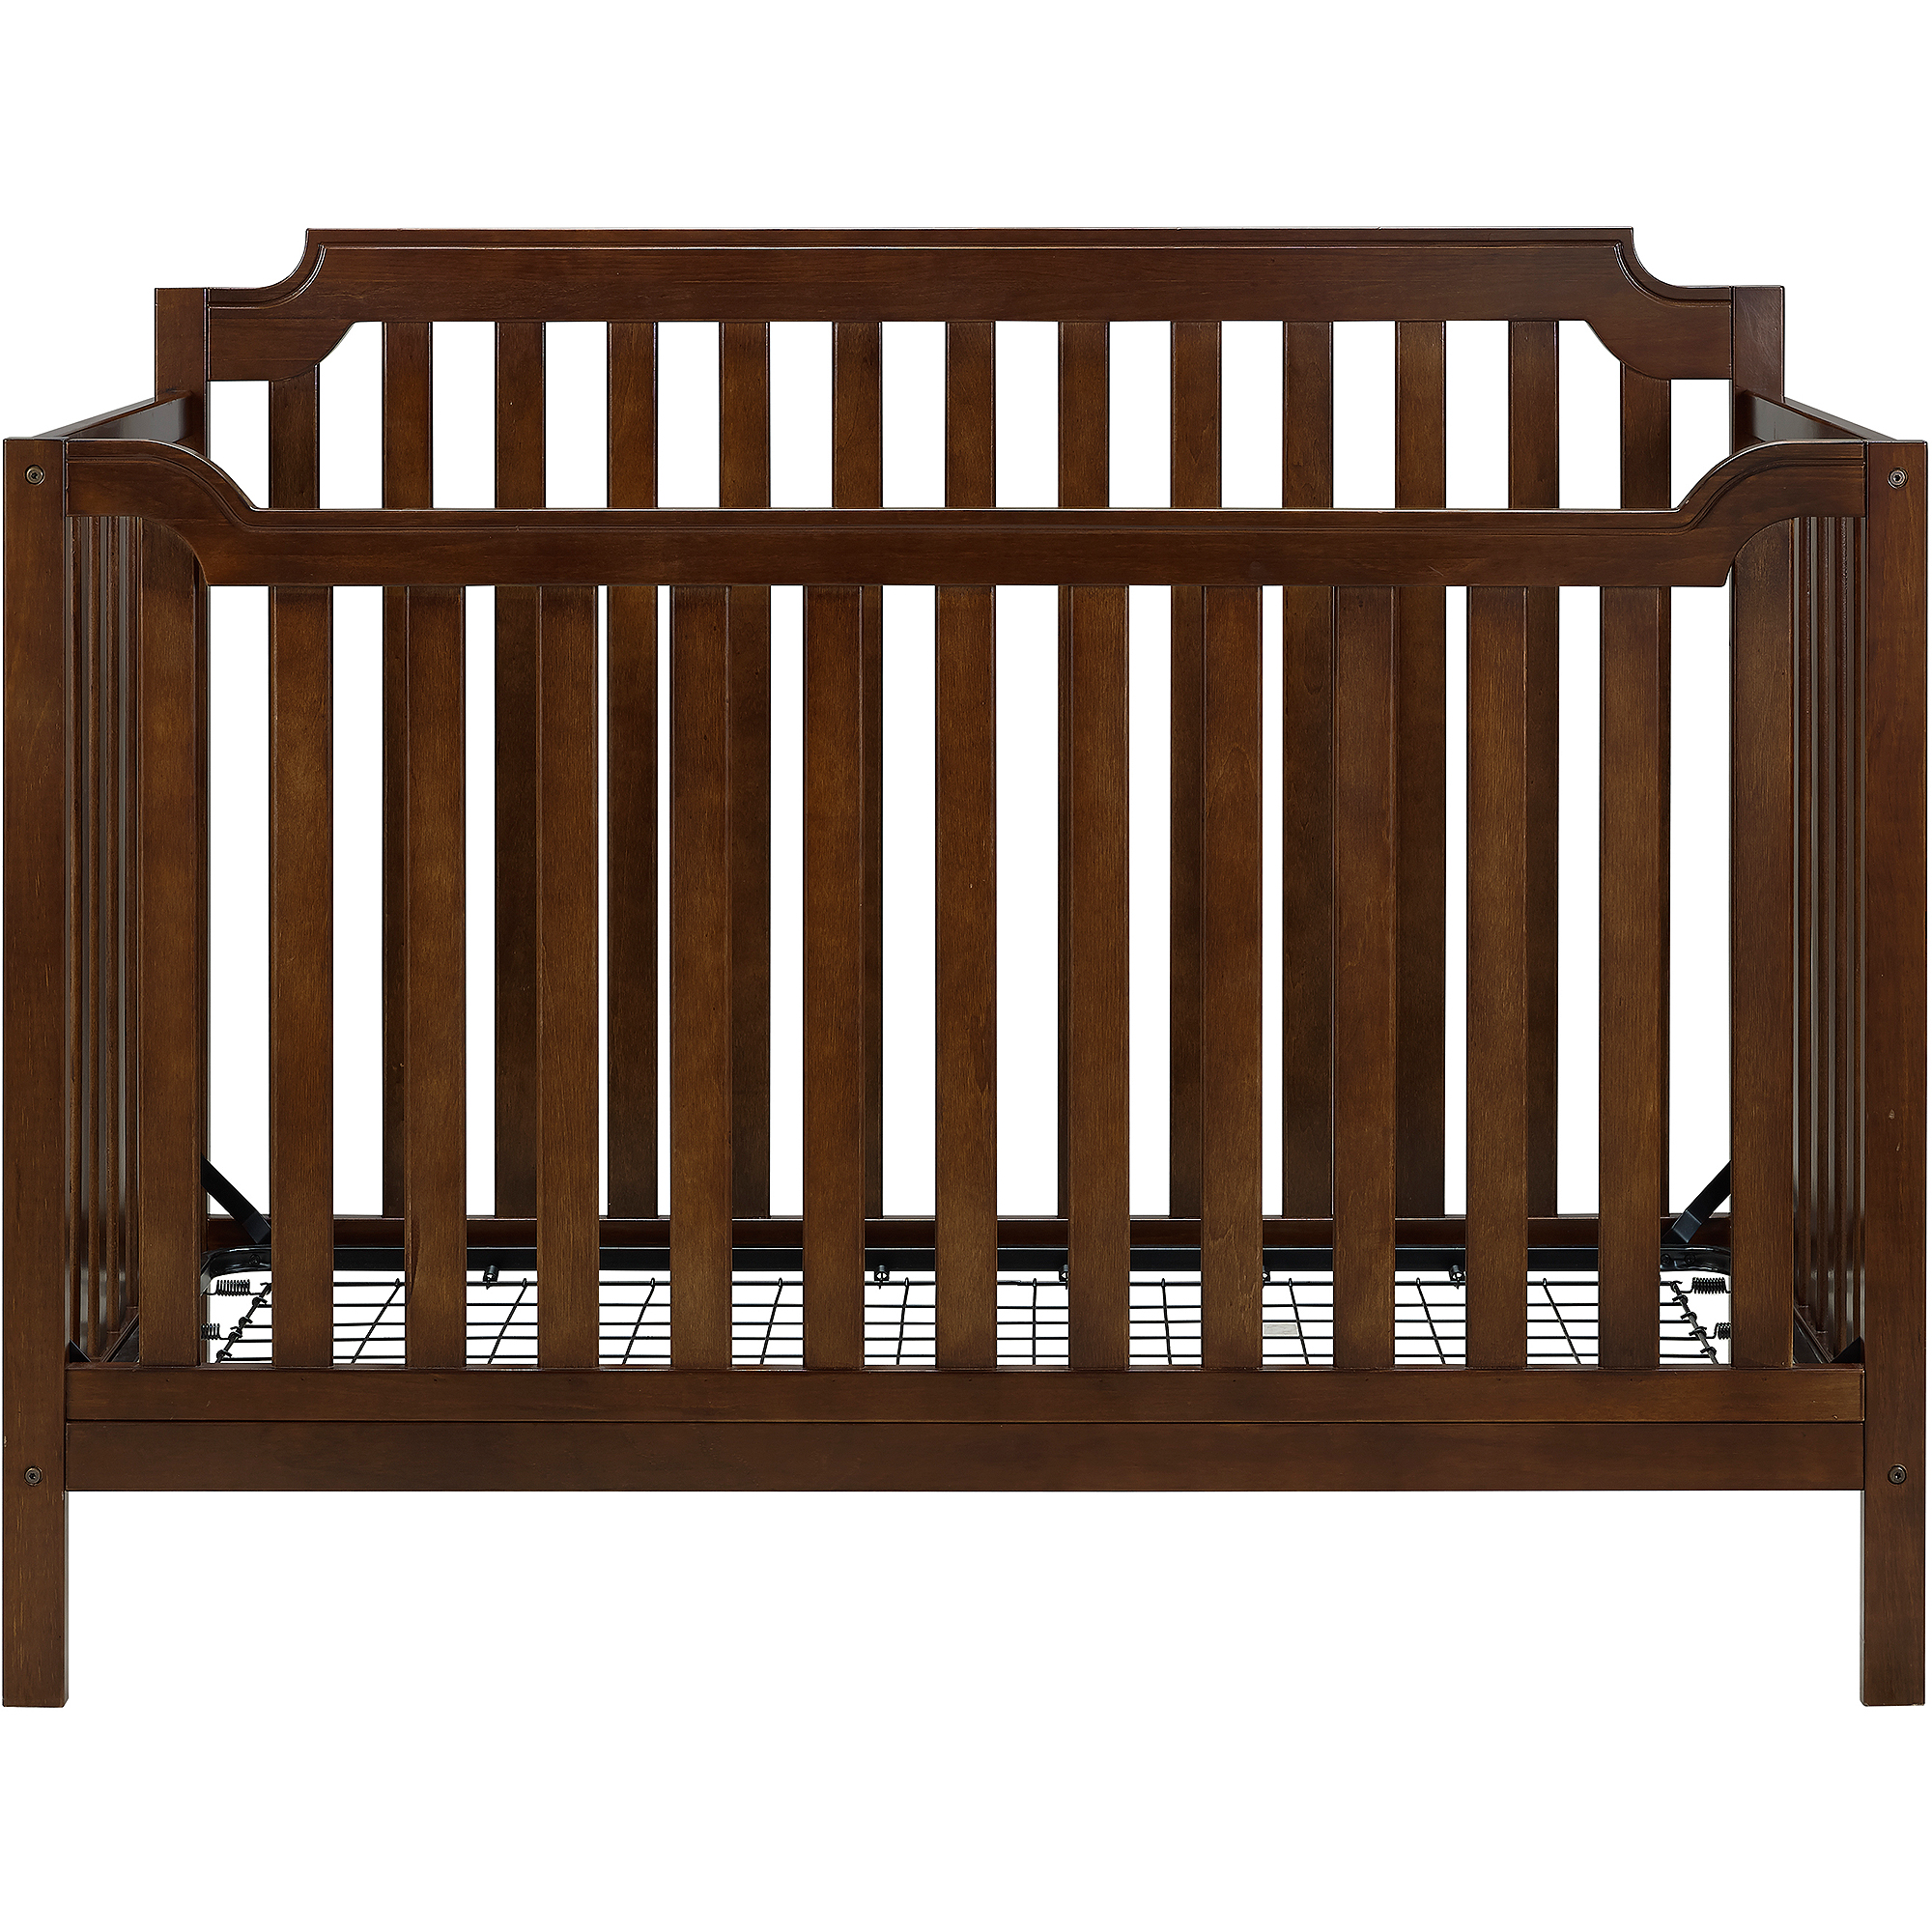 safety and a diaper cribs is black first babys s rugged tables plus white on crib multipurpose dresser convertible baby furniture drawer design dream ideas toddler bed constructed me impressive changing fosterboyspizza